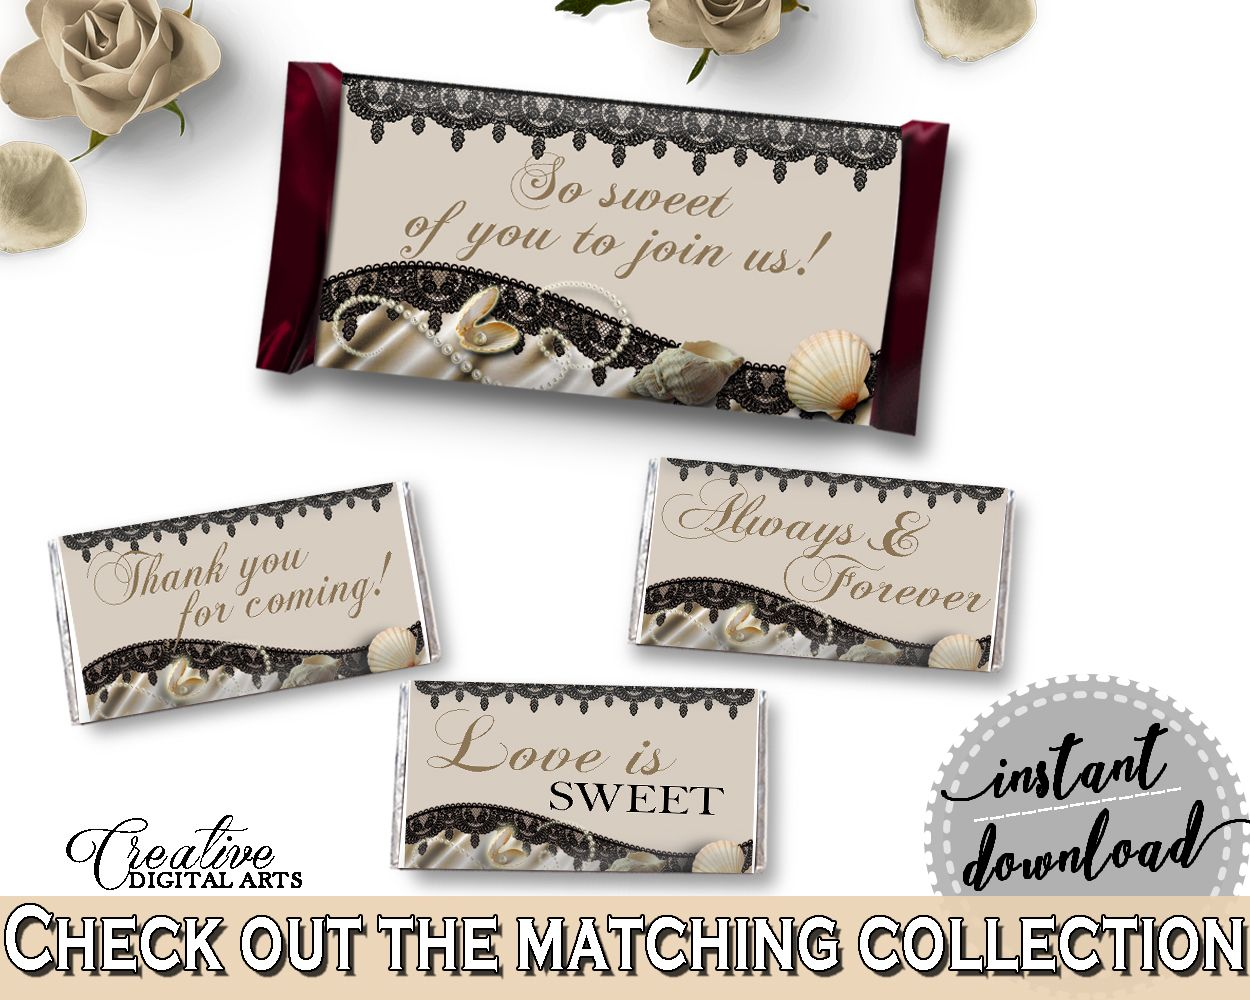 Hershey Mini And Standard Wrappers in Seashells And Pearls Bridal Shower Brown And Beige Theme, decoration wraps, shower activity - 65924 #bridalshower #bride-to-be #bridetobe